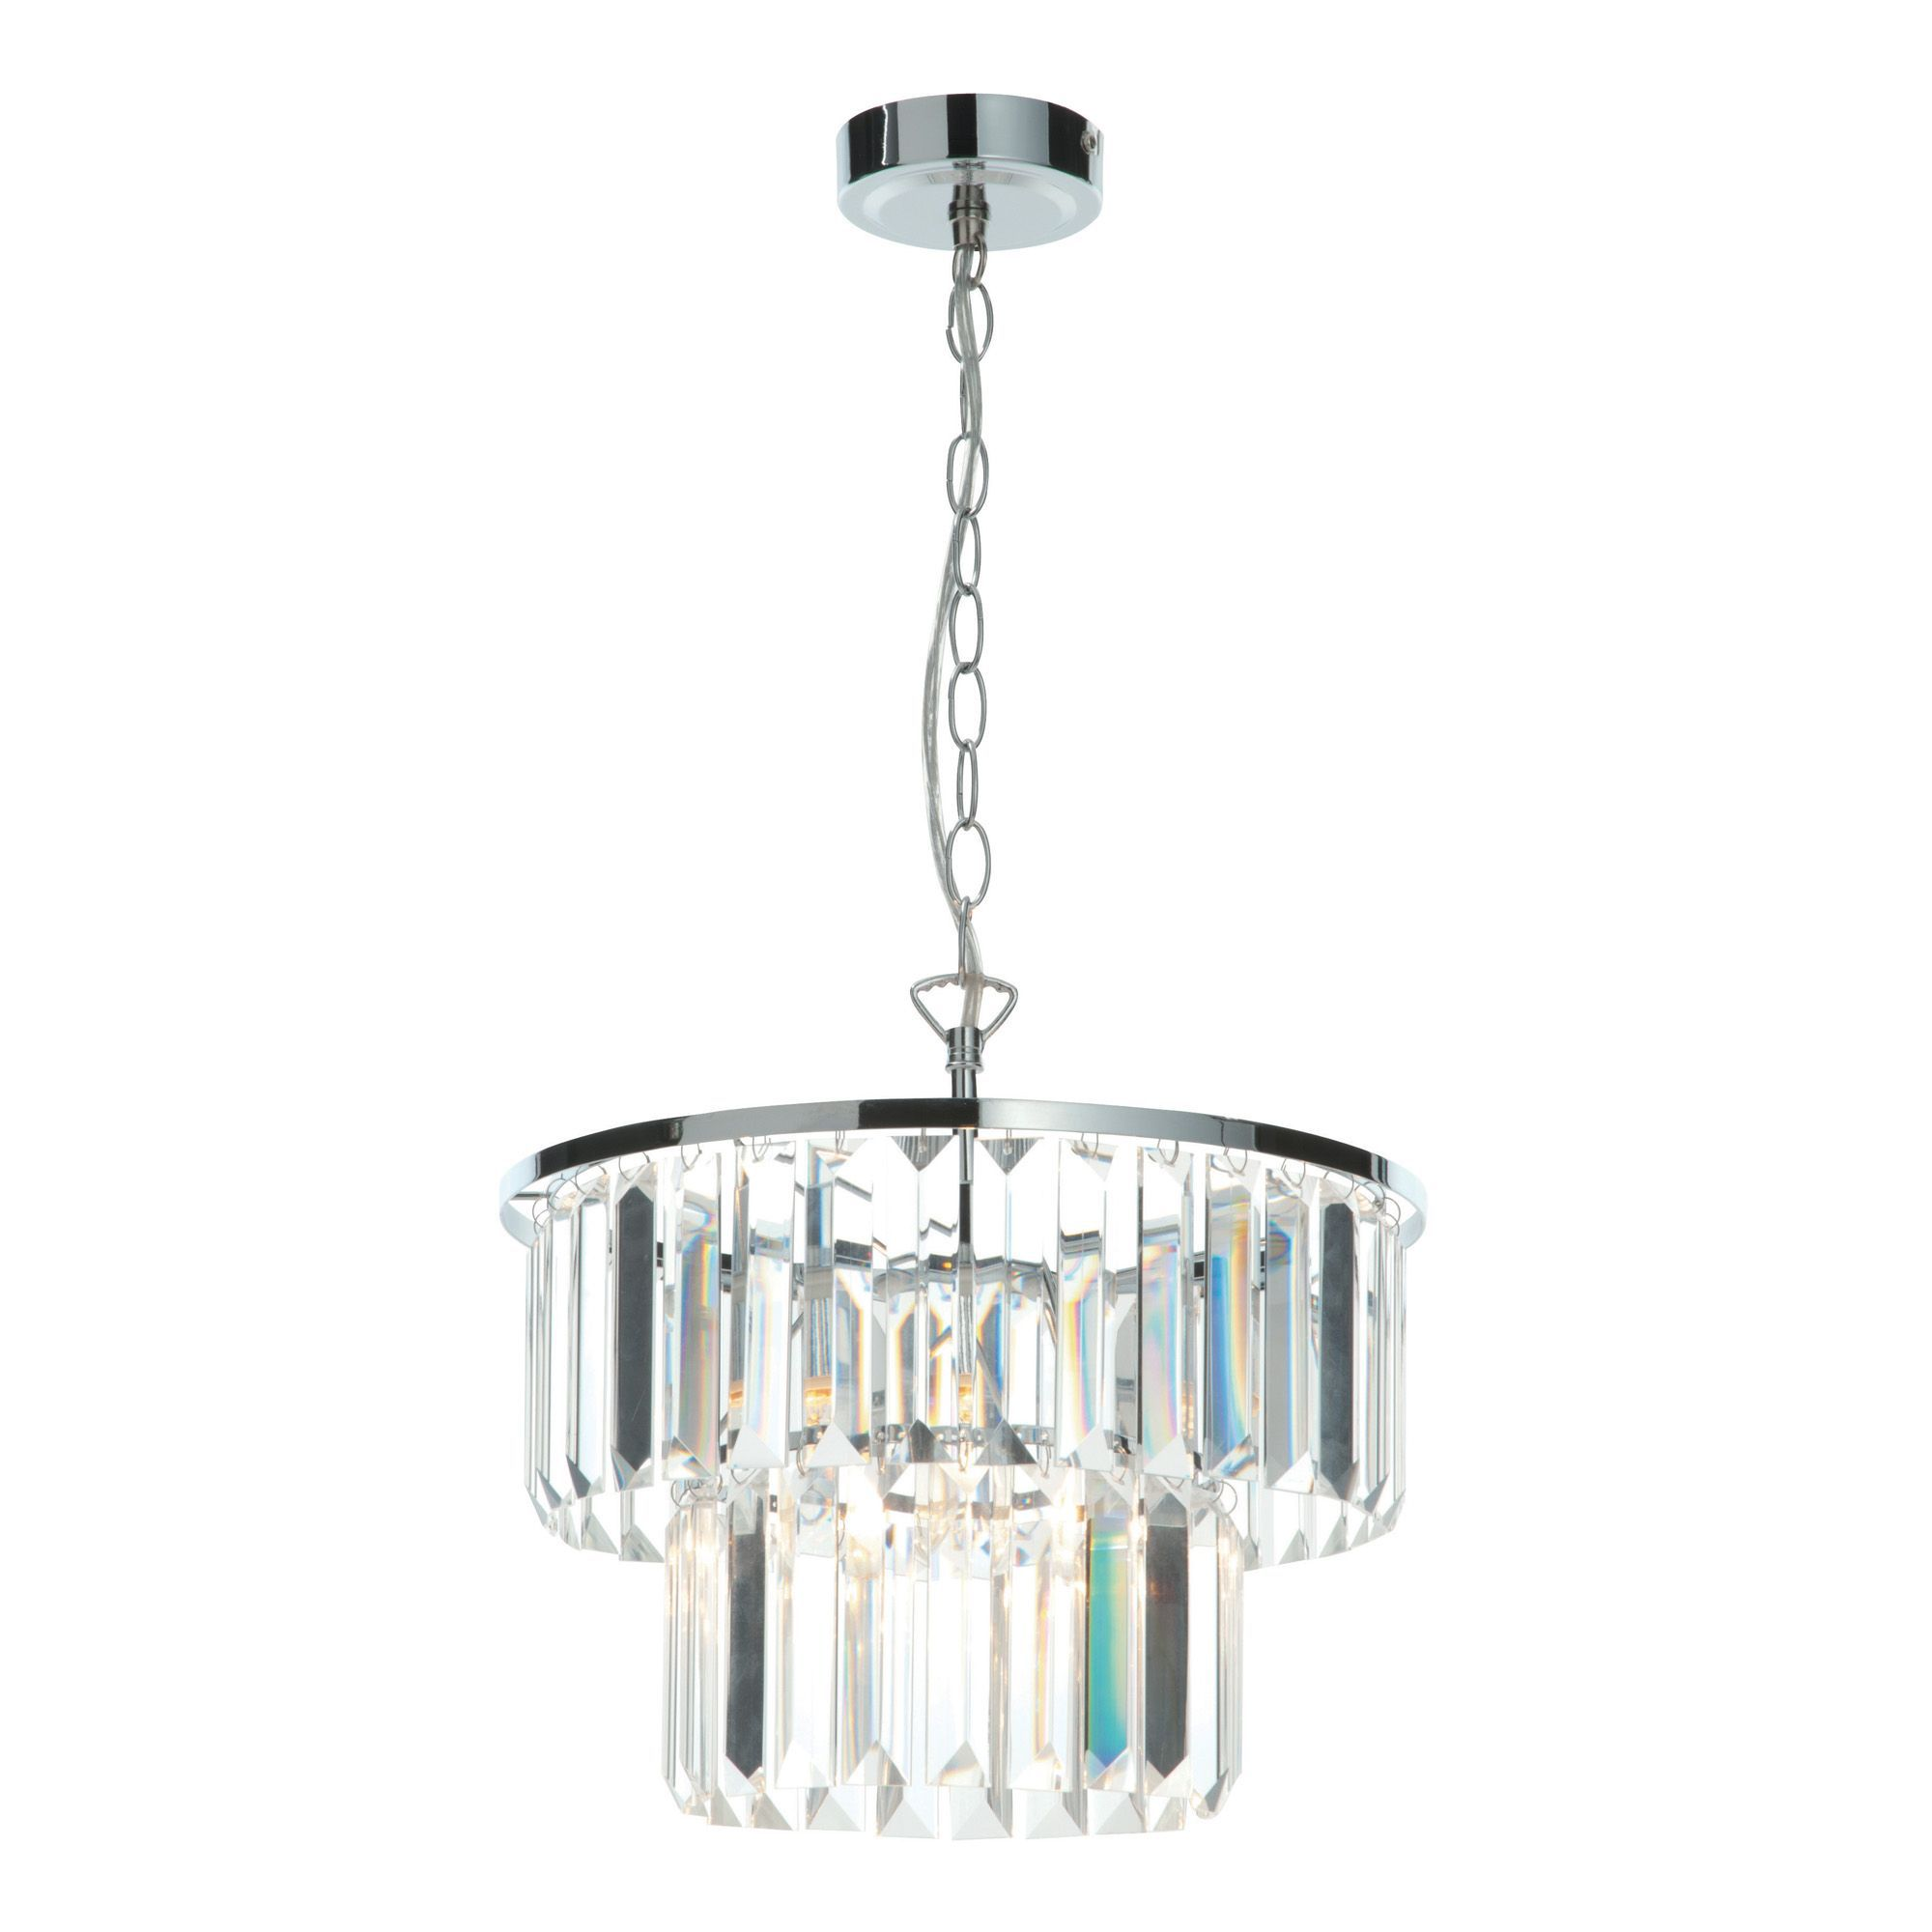 Knightsbridge faceted glass clear pendant ceiling light knightsbridge faceted glass clear pendant ceiling light departments diy at bq mozeypictures Choice Image